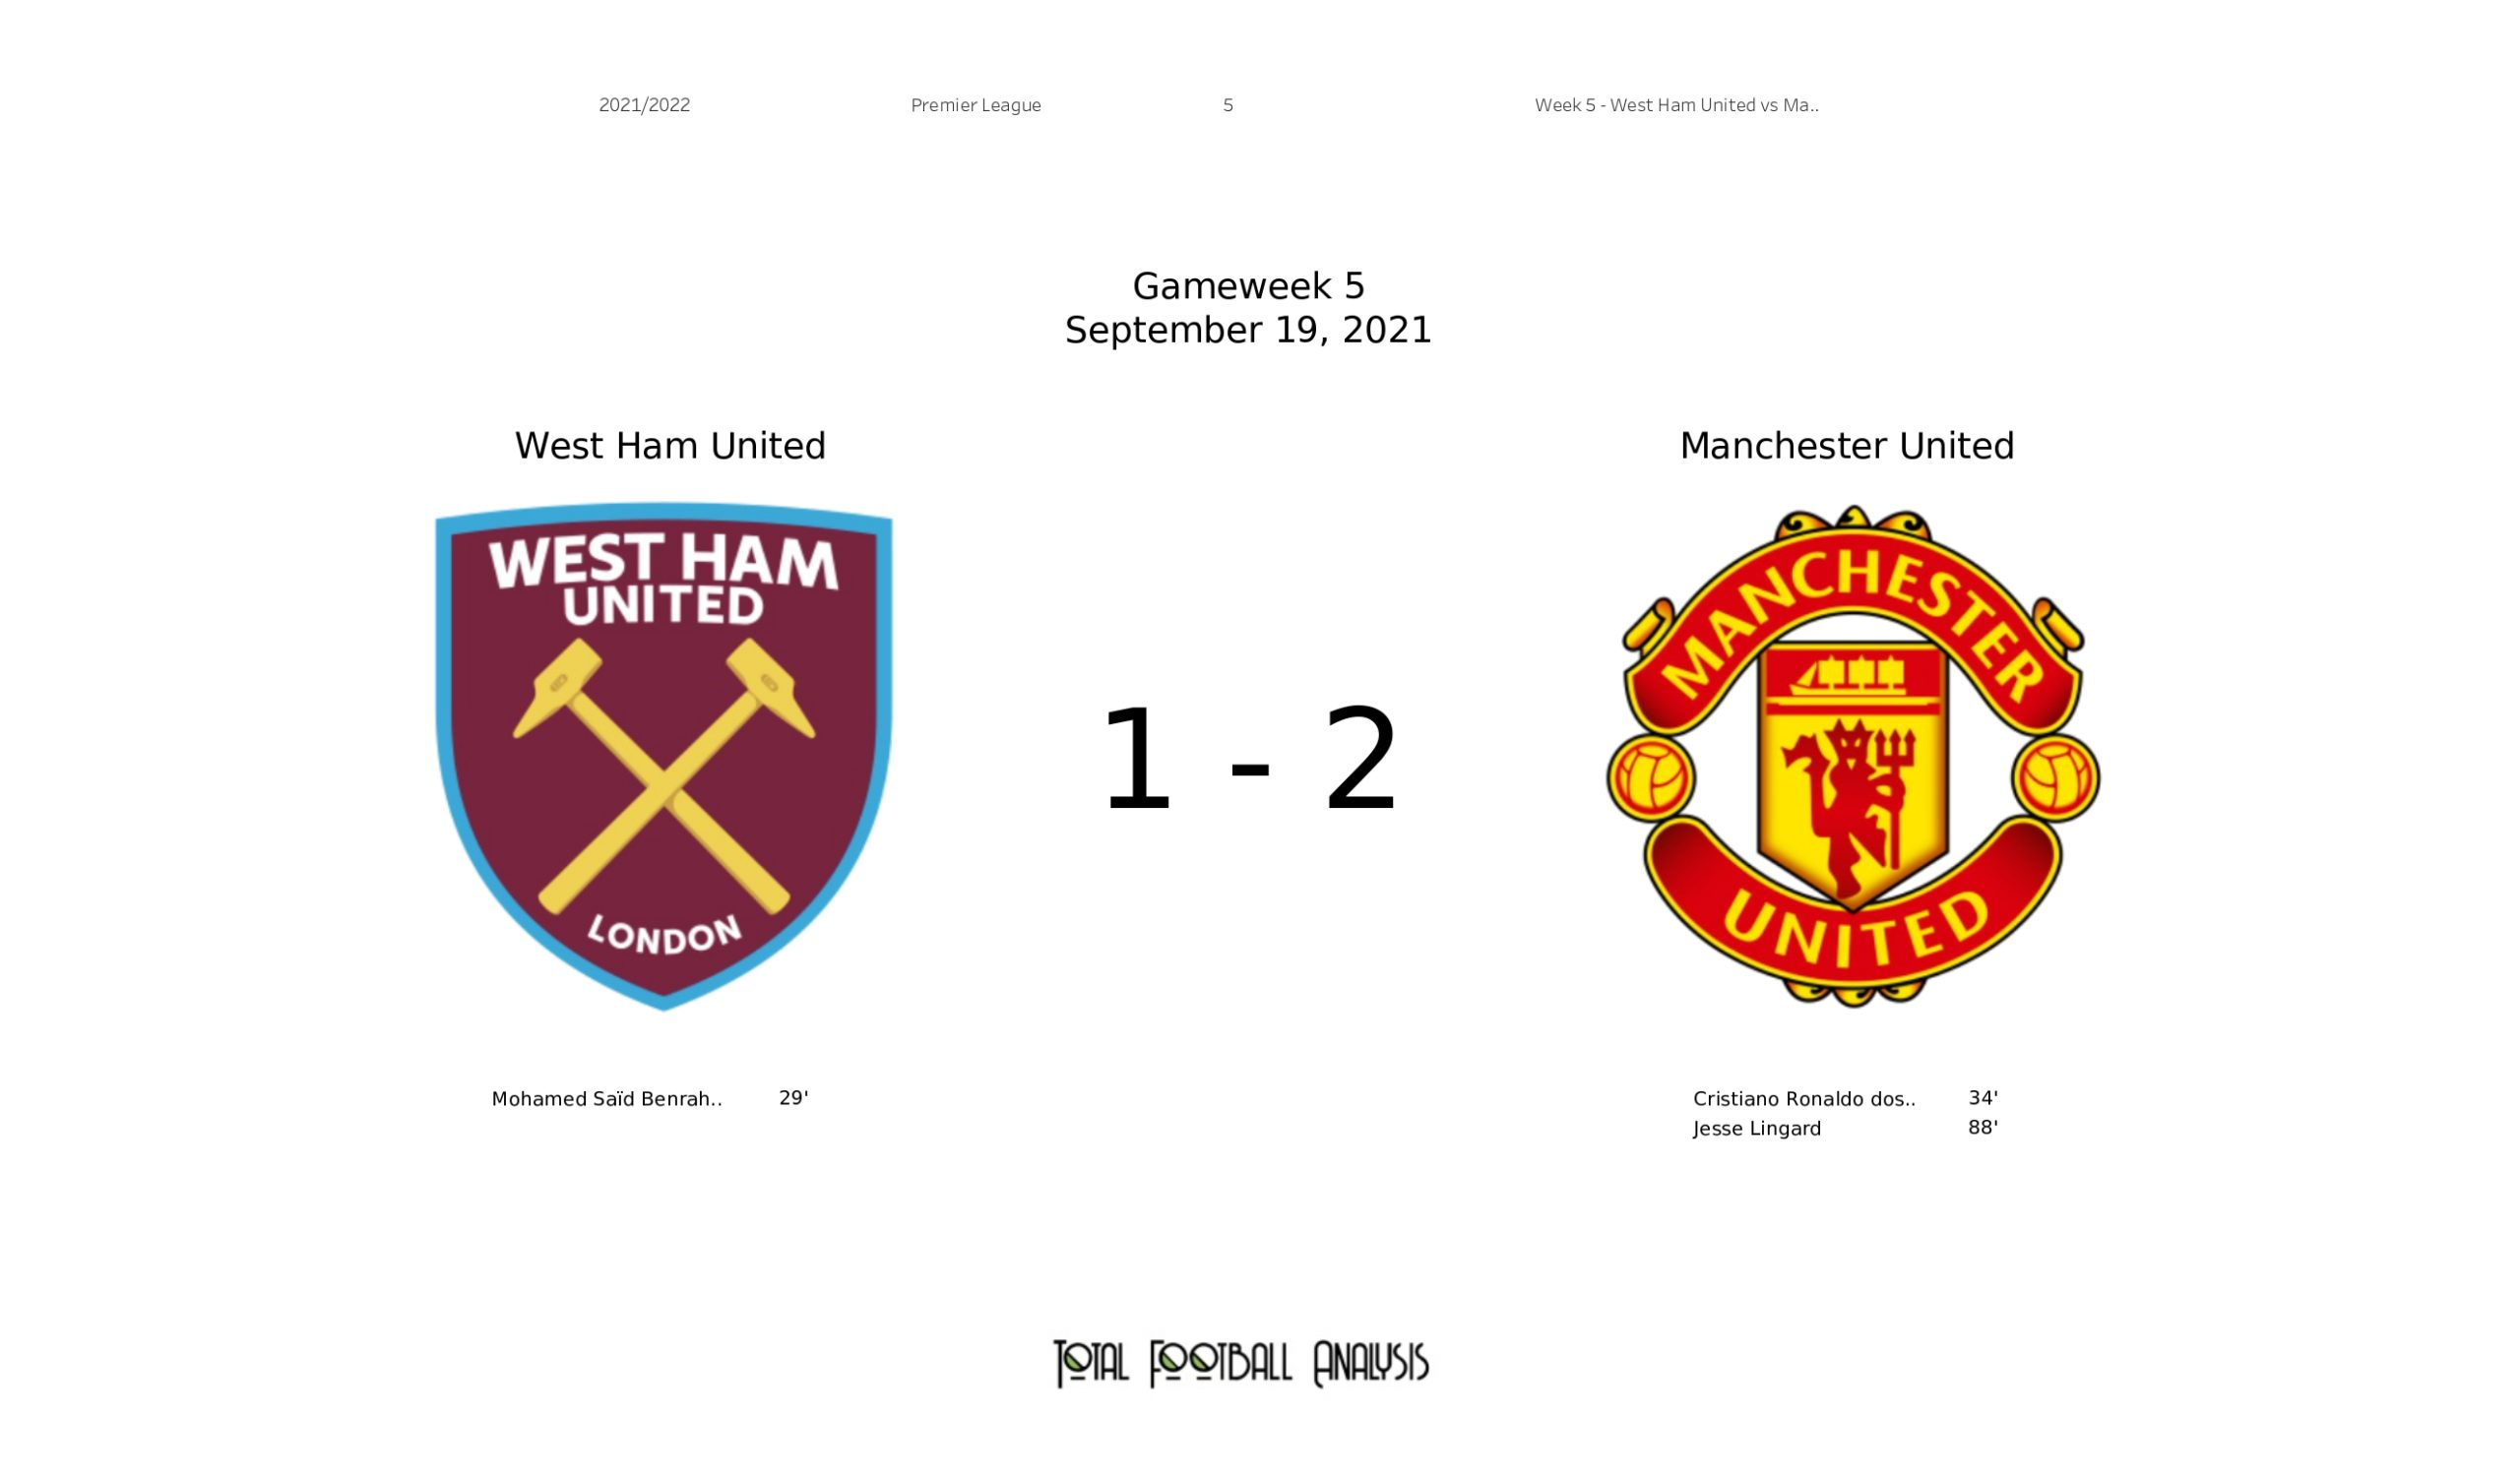 EPL Stats Gallery: West Ham United vs Manchester United